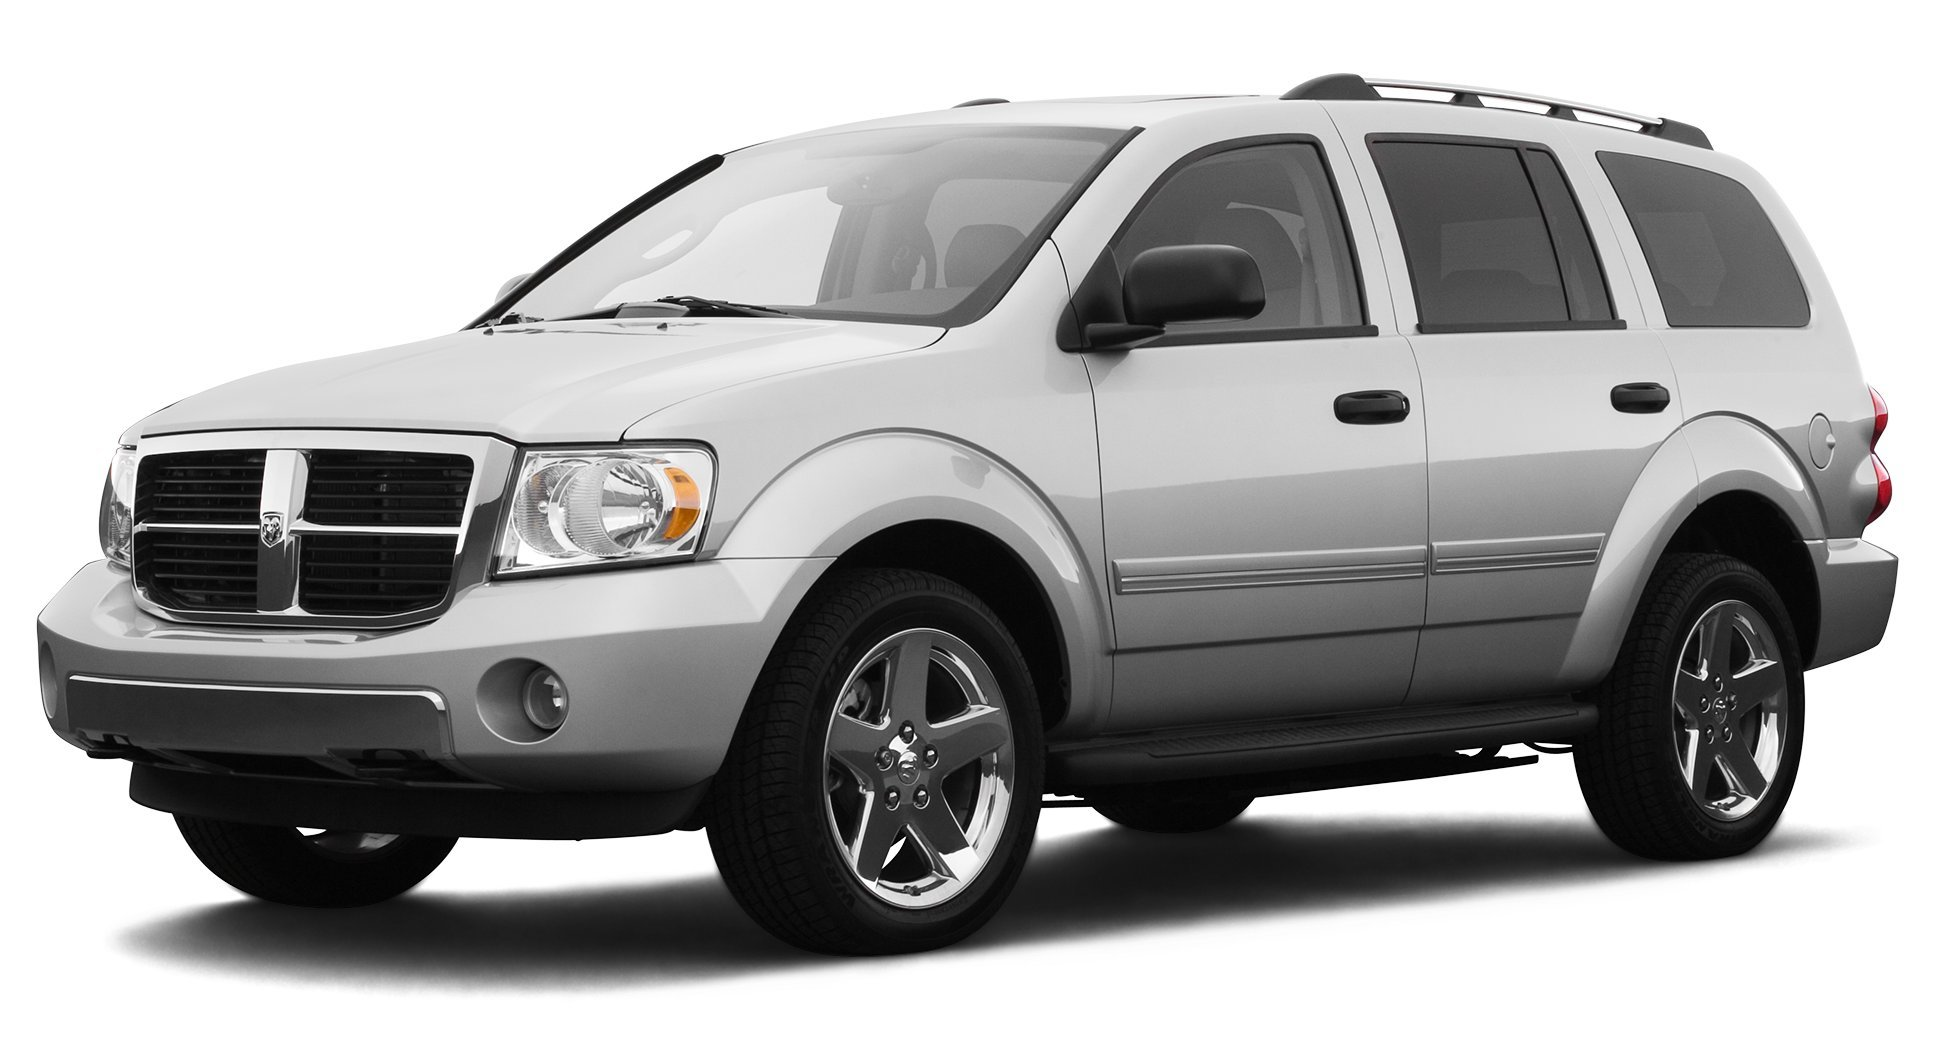 Amazoncom 2007 Nissan Pathfinder Reviews Images And Specs Vehicles